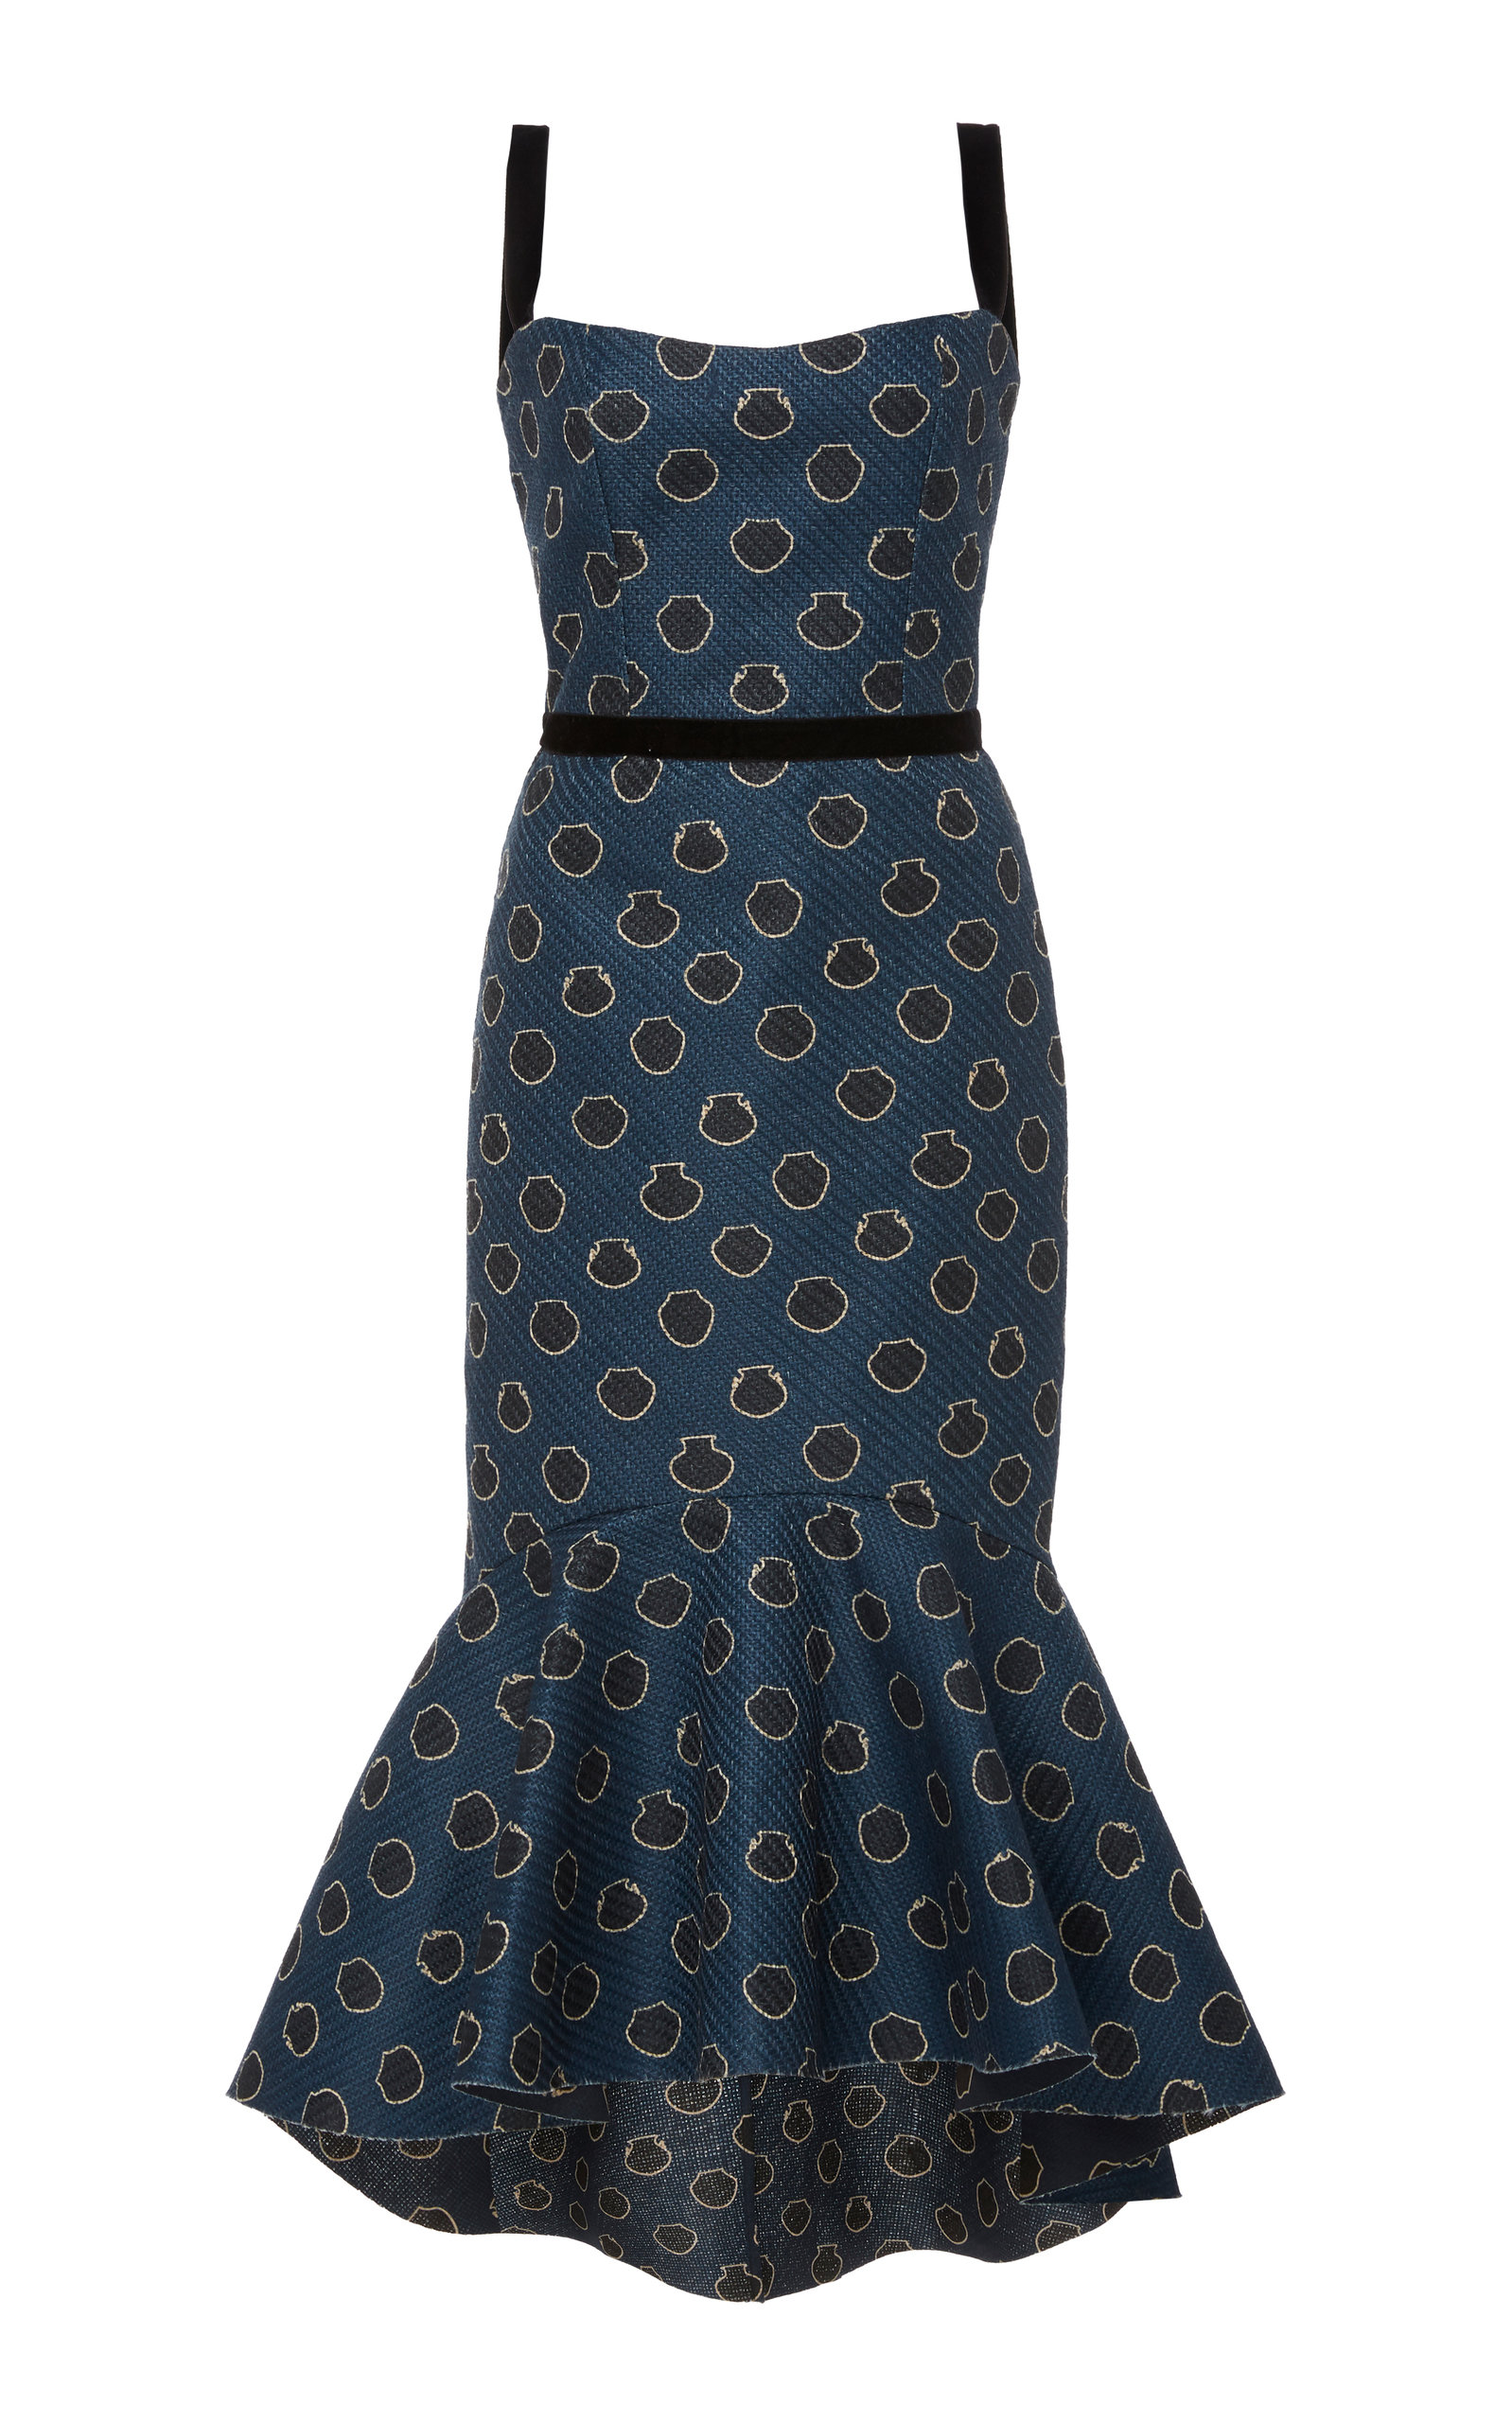 Buy Johanna Ortiz Printed Canvas Midi Dress online, shop Johanna Ortiz at the best price